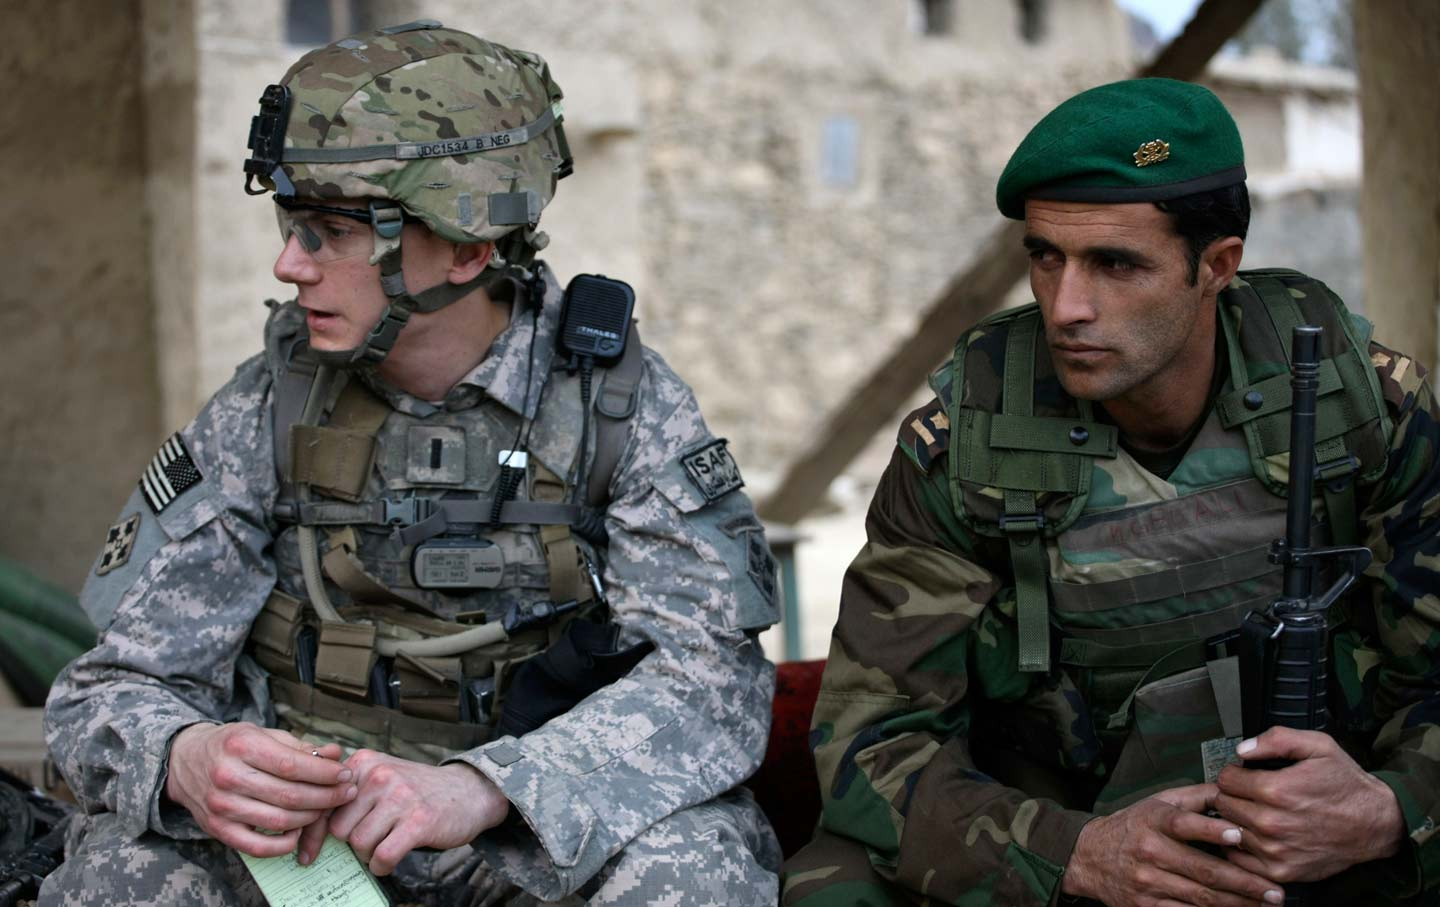 US Army platoon leader and Afghan National Army officer